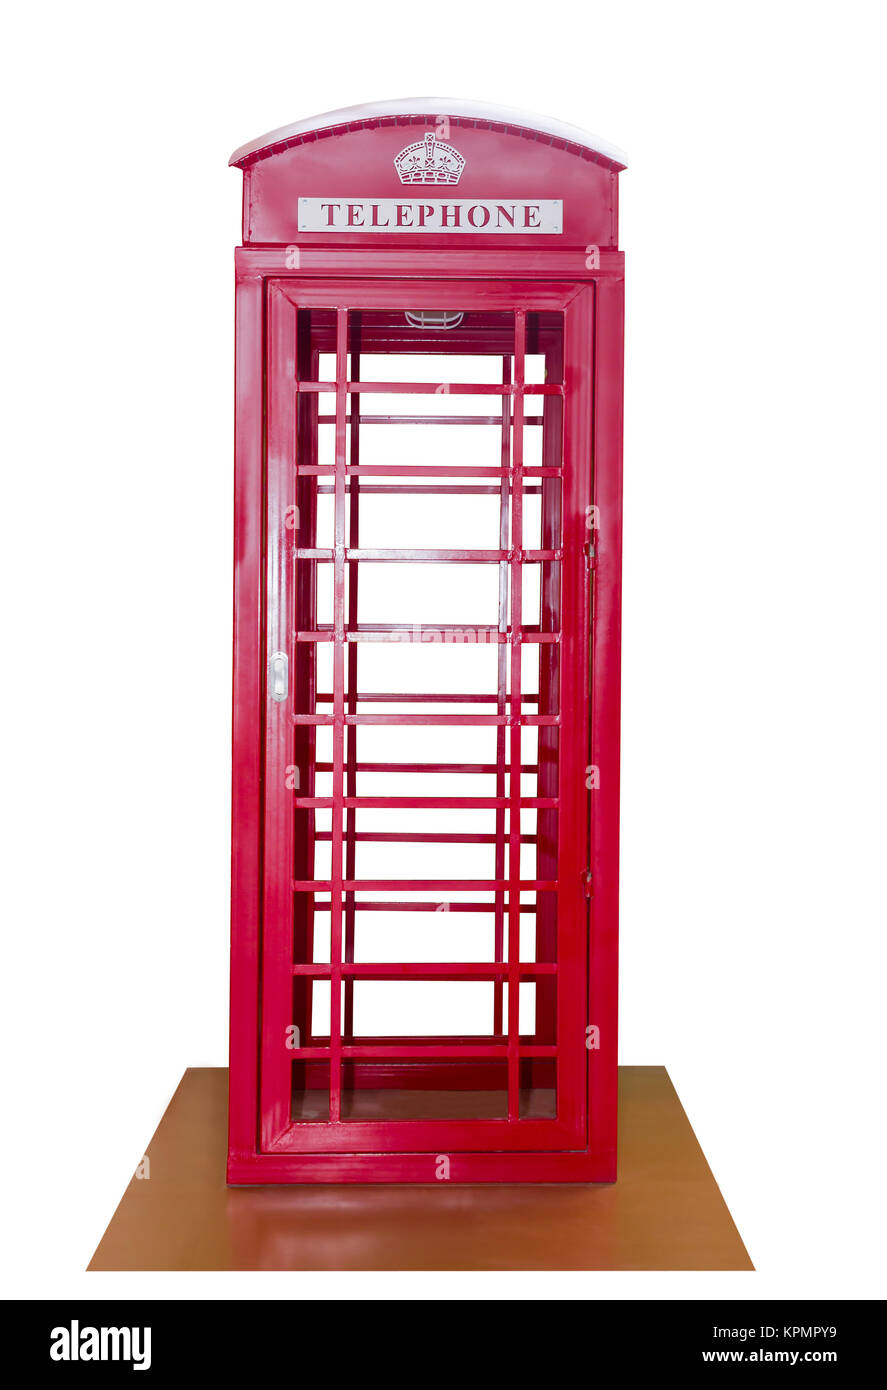 Classic British red phone booth - Stock Image